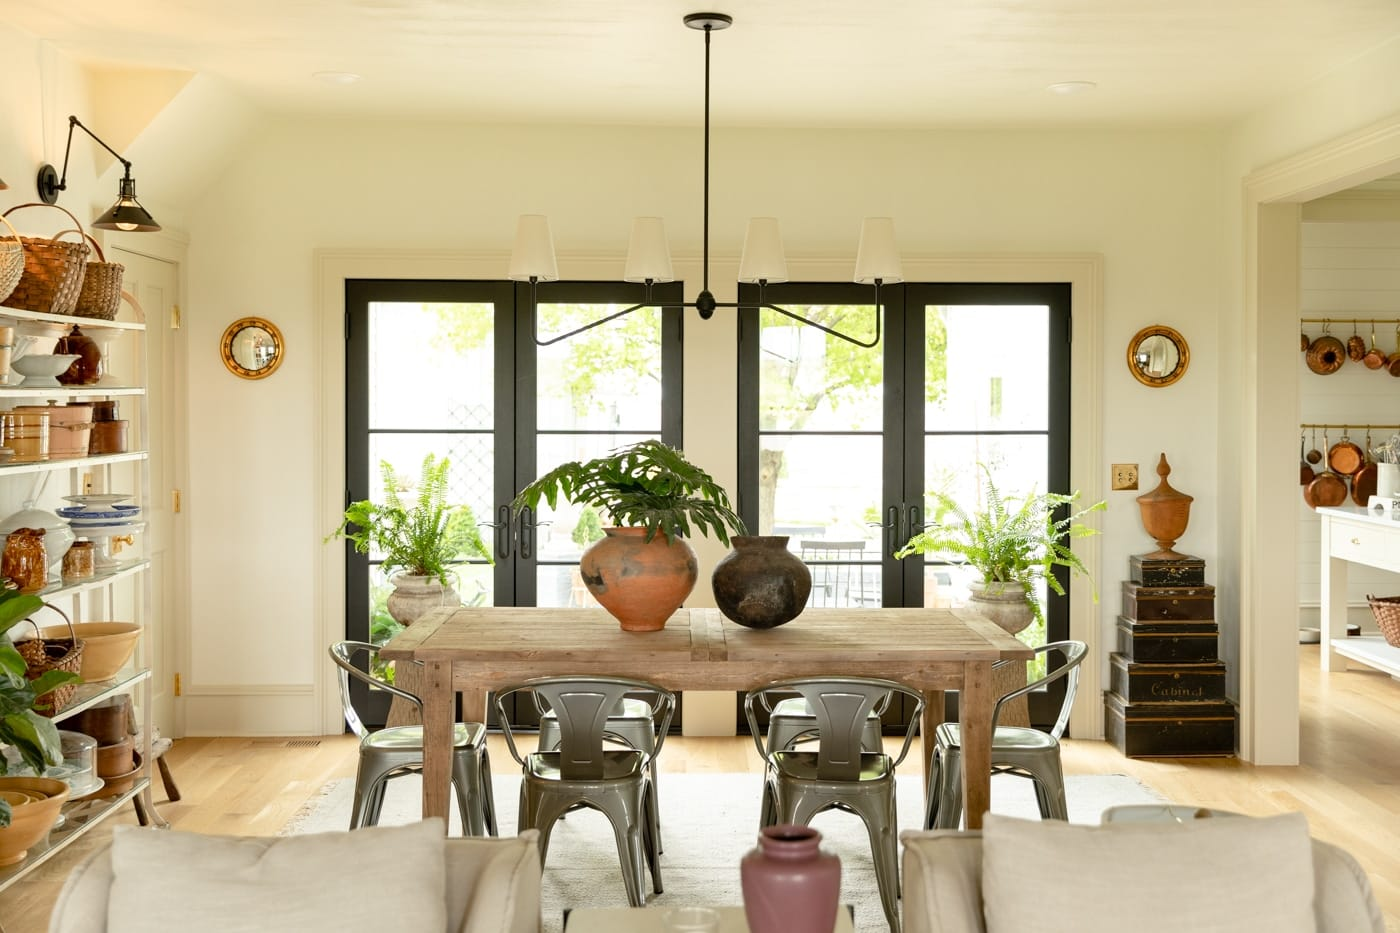 Wood dining room table with metal chairs around with pots and plants on table and large French doors in background